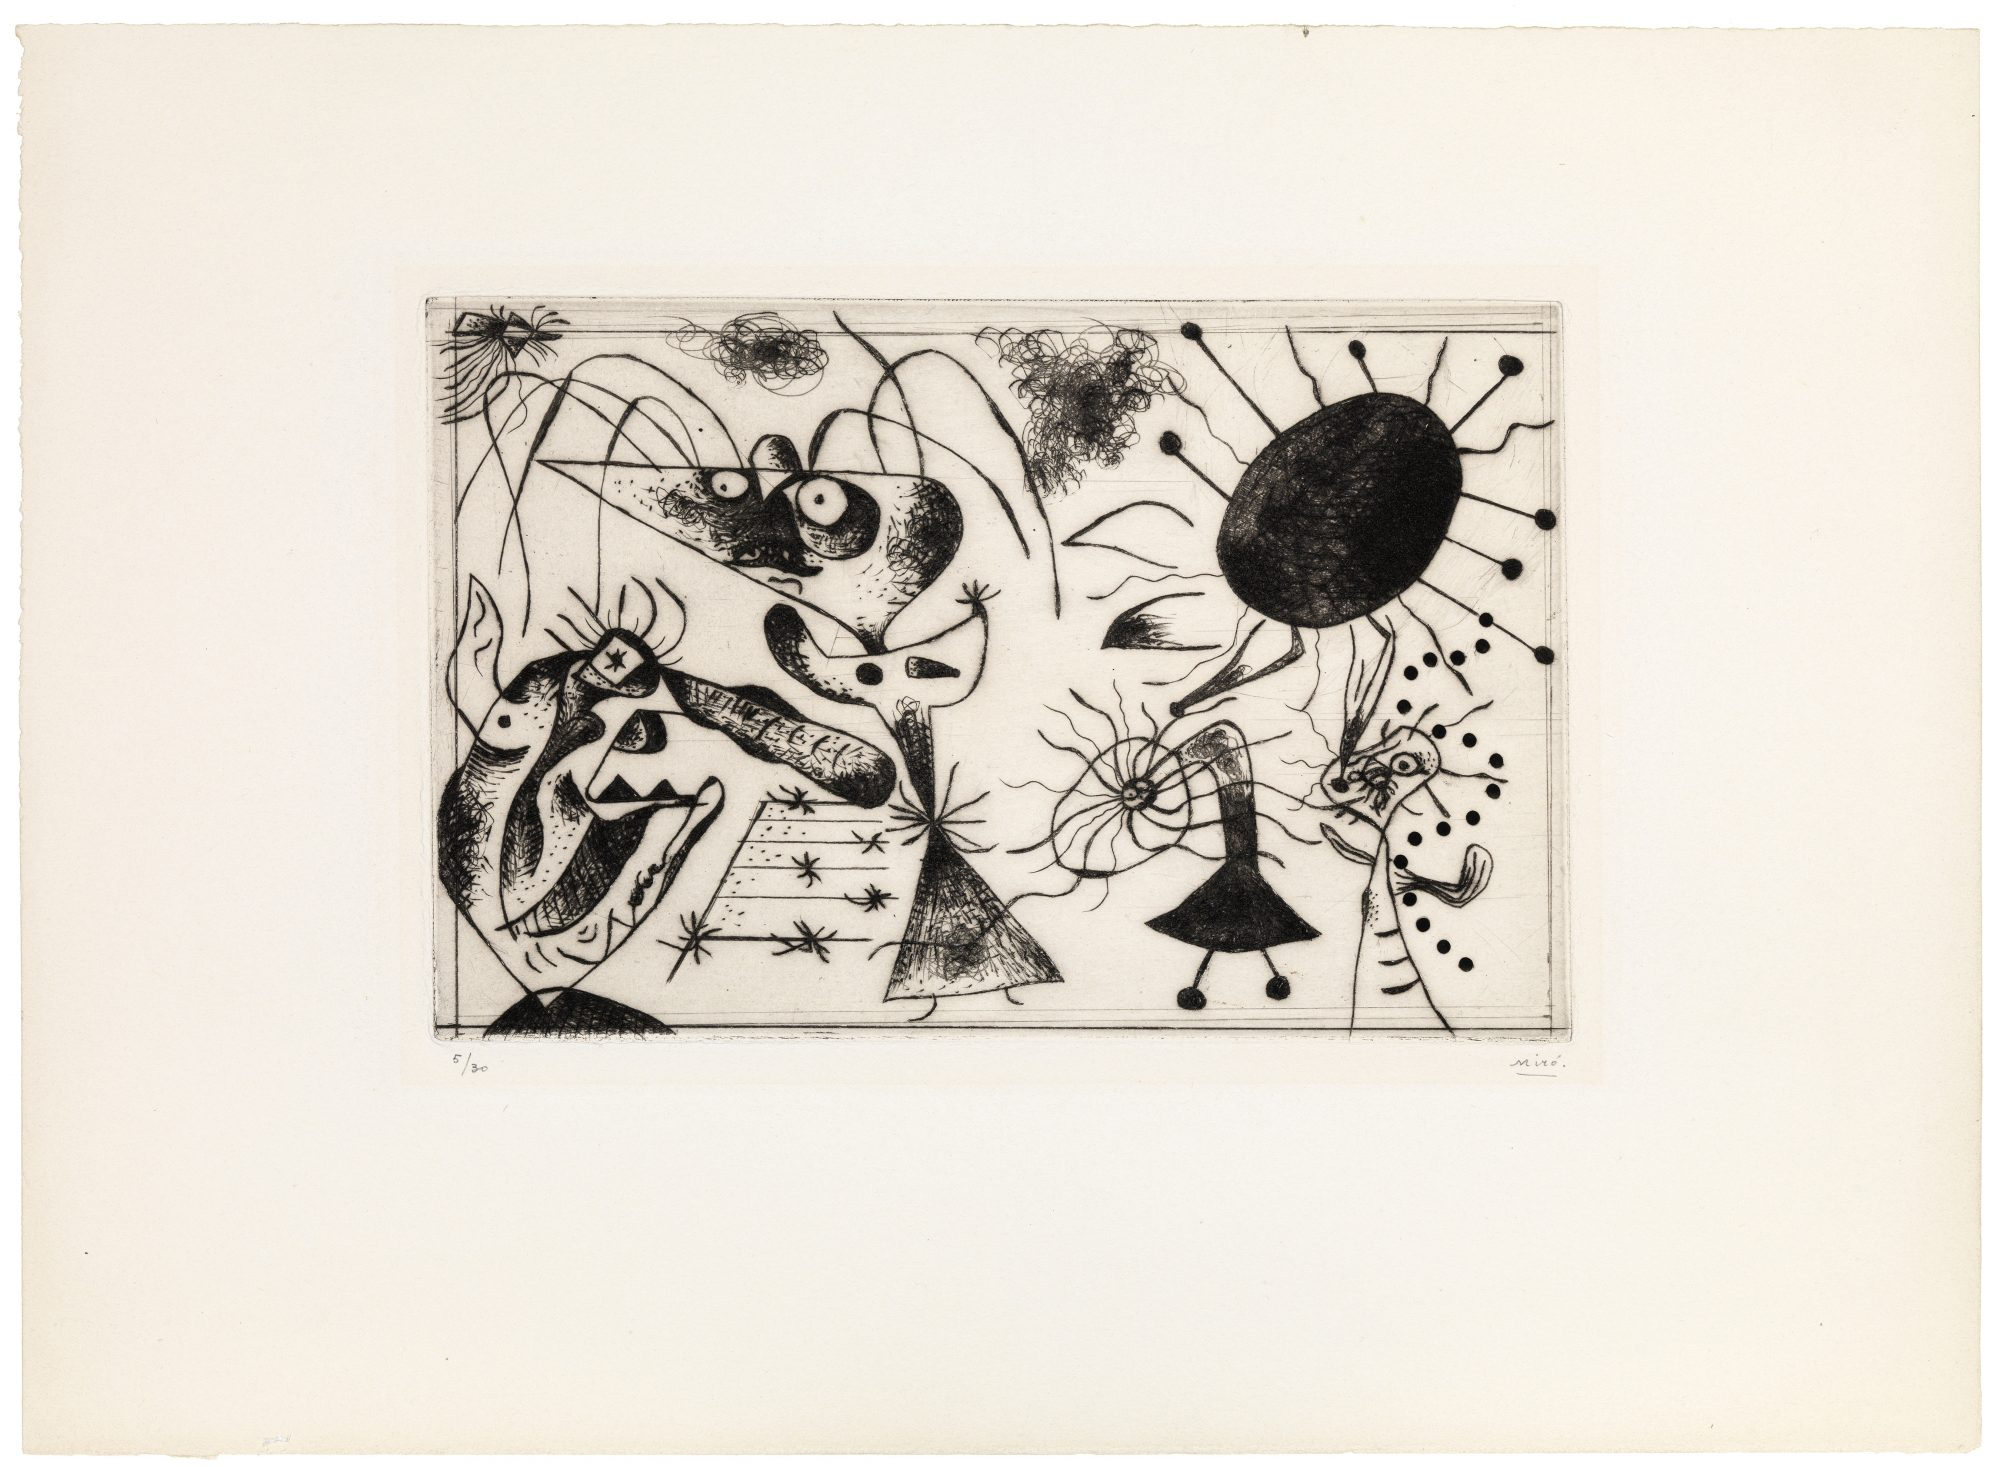 Joan Miro (Spanish, 1893–1983) Série noire et rouge (Black and Red Series), 1938. Drypoint, 7 9/16 x 11 3/16 in. Gift of Madeleine P. and Harvey R. Plonsker, Class of 1961, M.2015.25.1